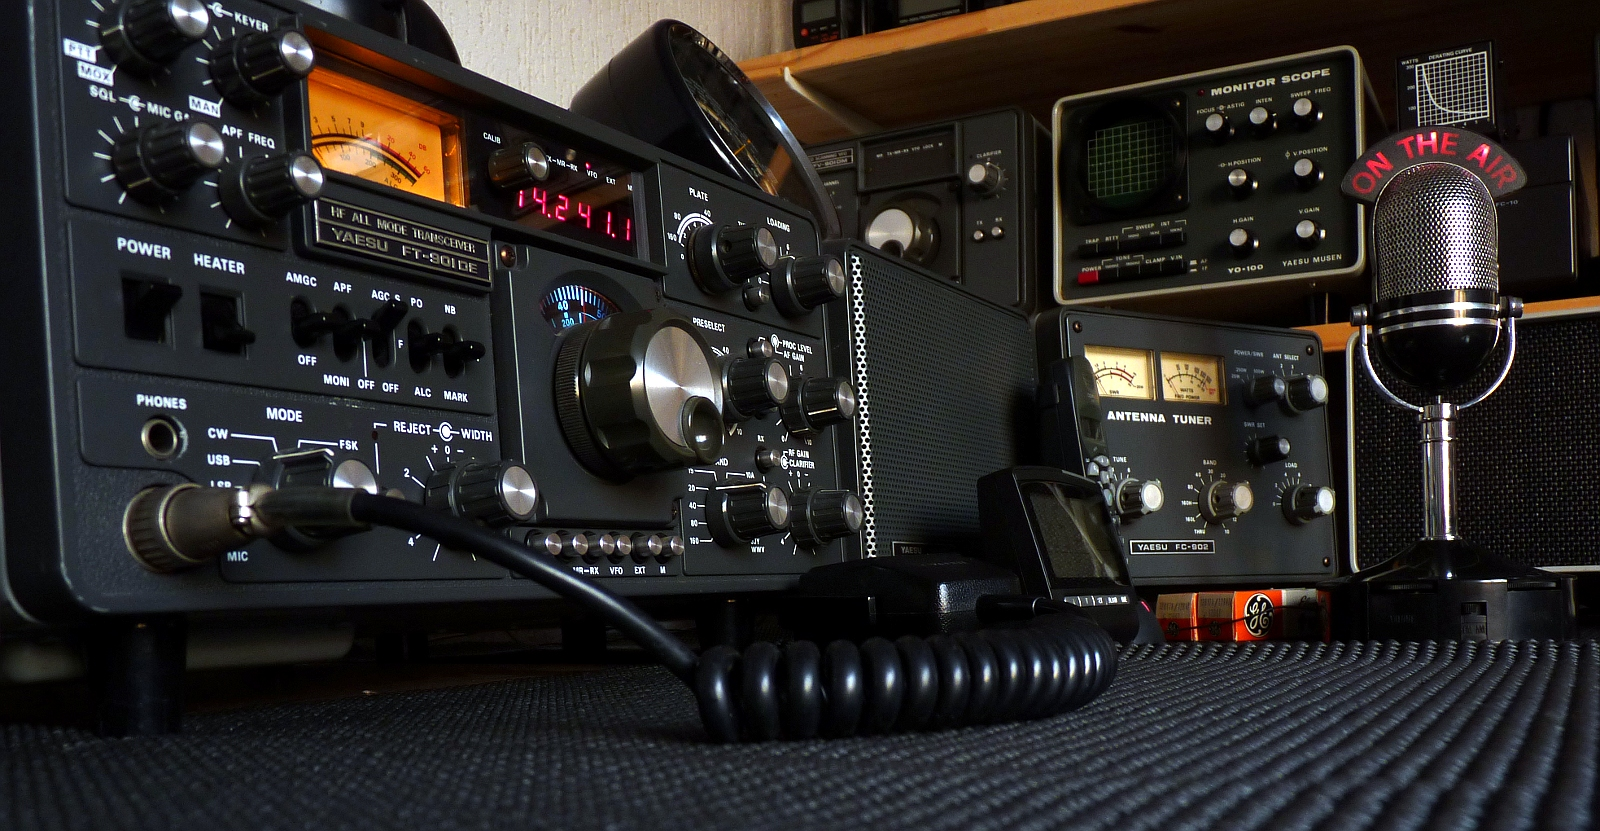 Radio Communication Methods During Emergencies- Part 2, by R. in NC